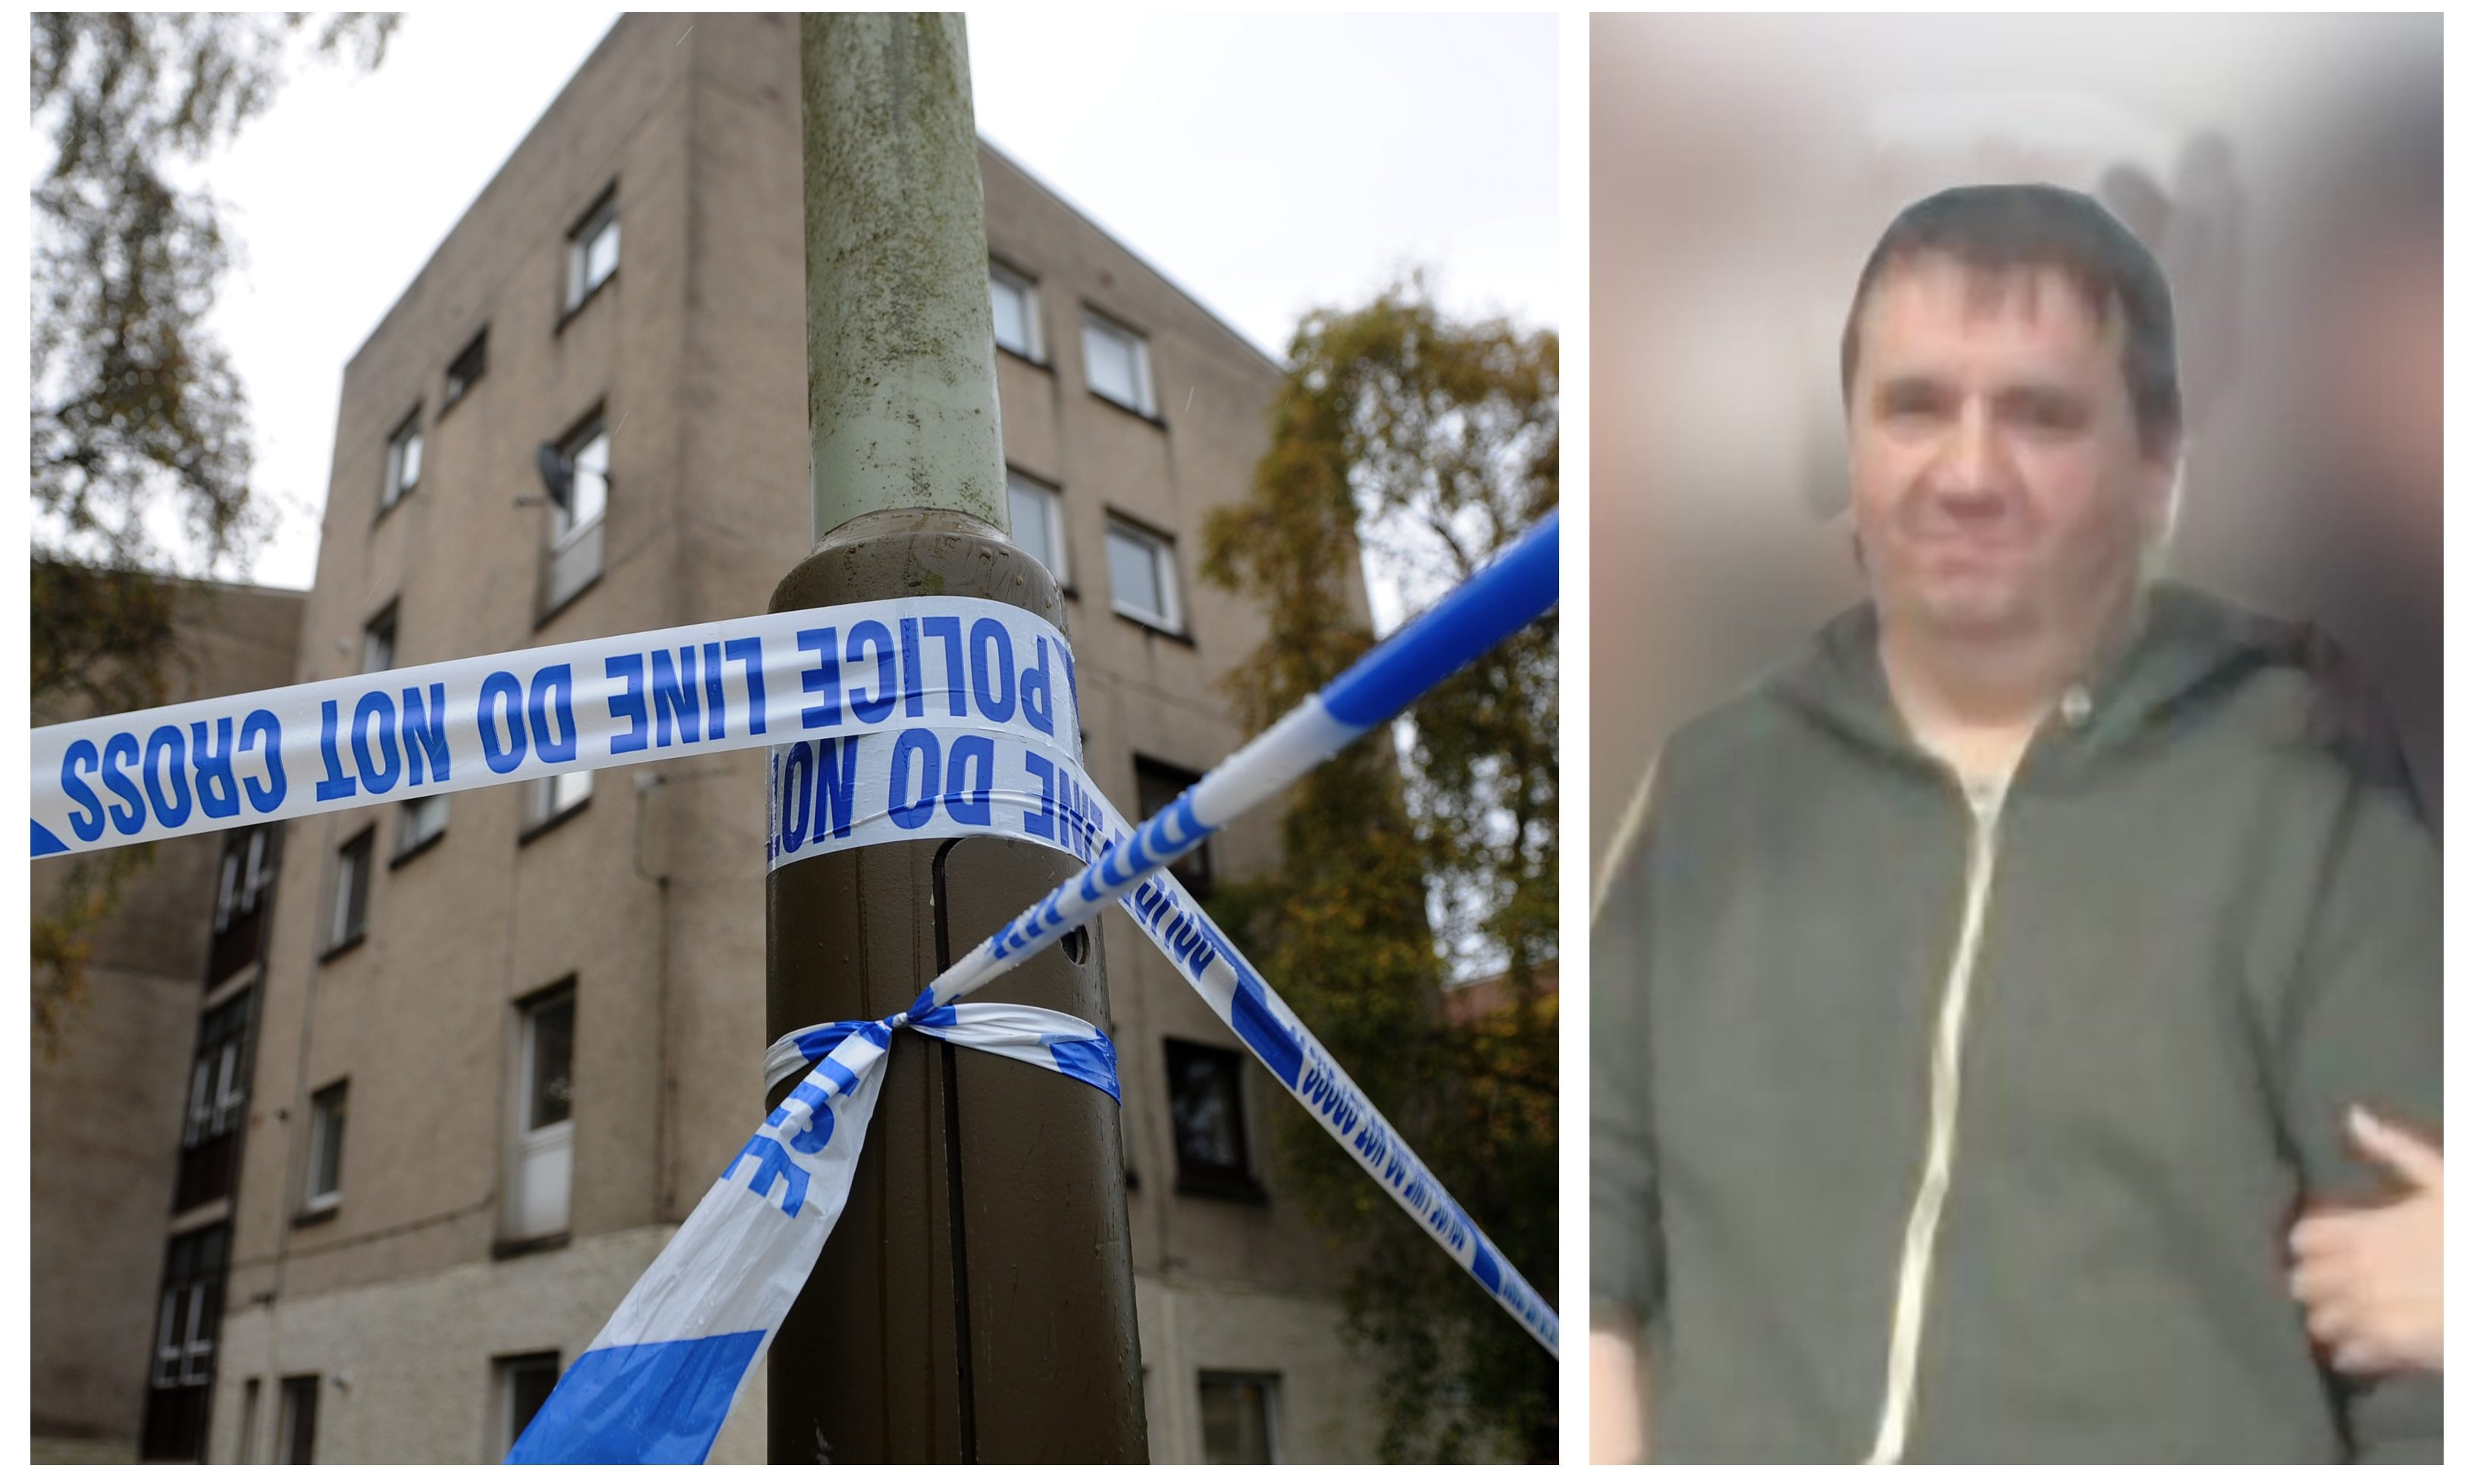 Mark Johnston and the scene of the attack.